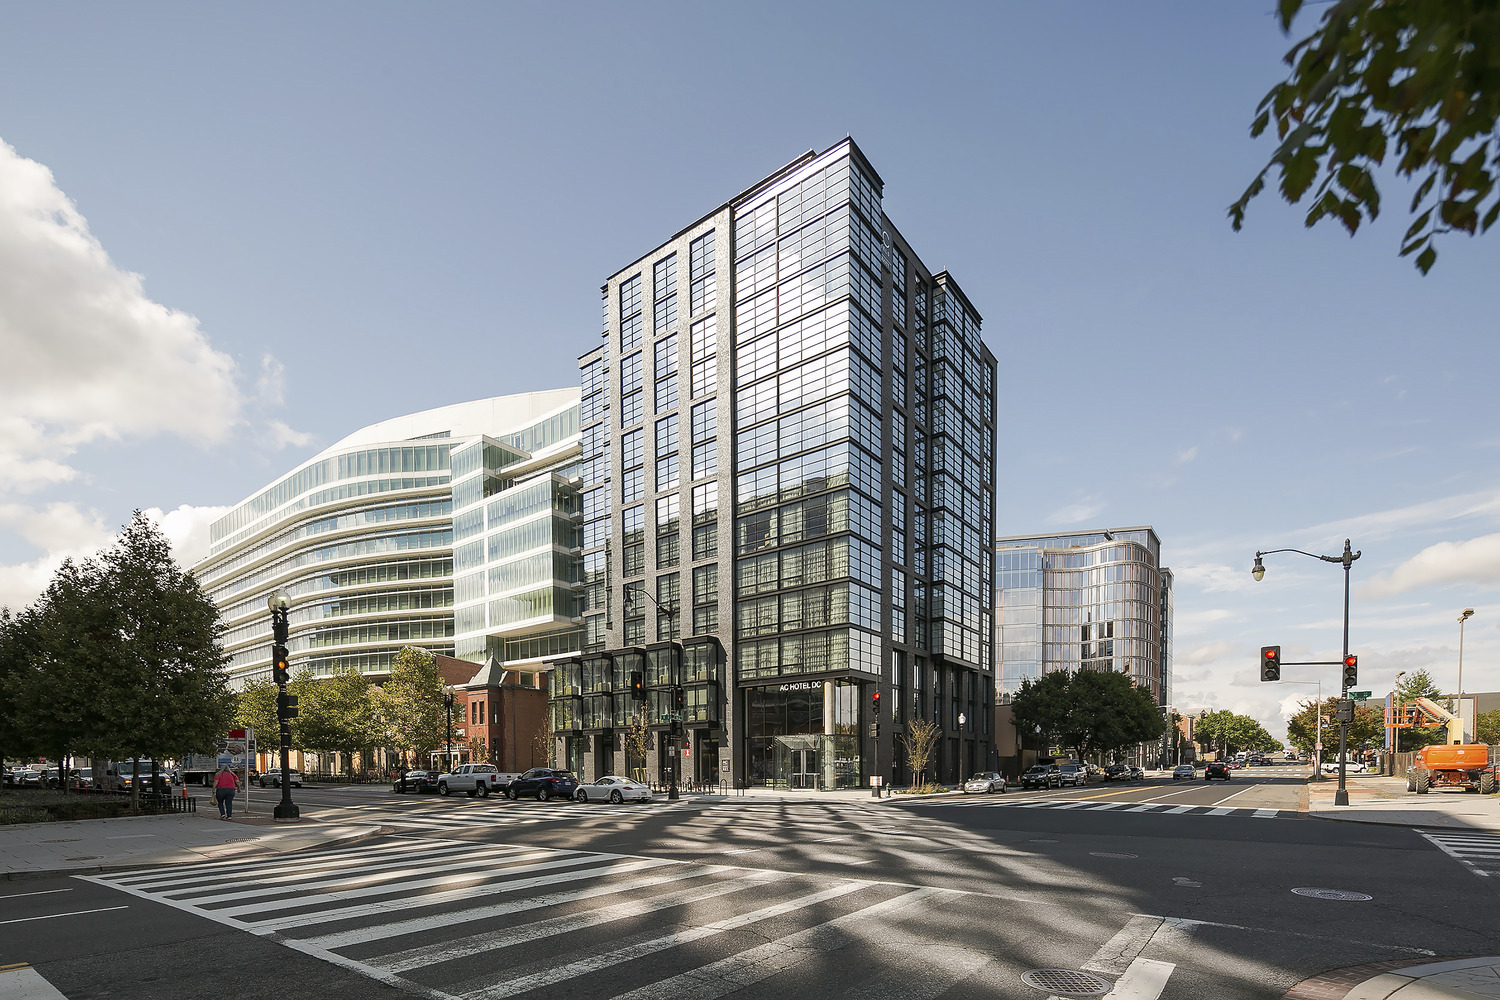 CBG builds Marriott AC, a 13-Story, 234-Room Luxury Hotel with Retail and Amenities in Washington, DC